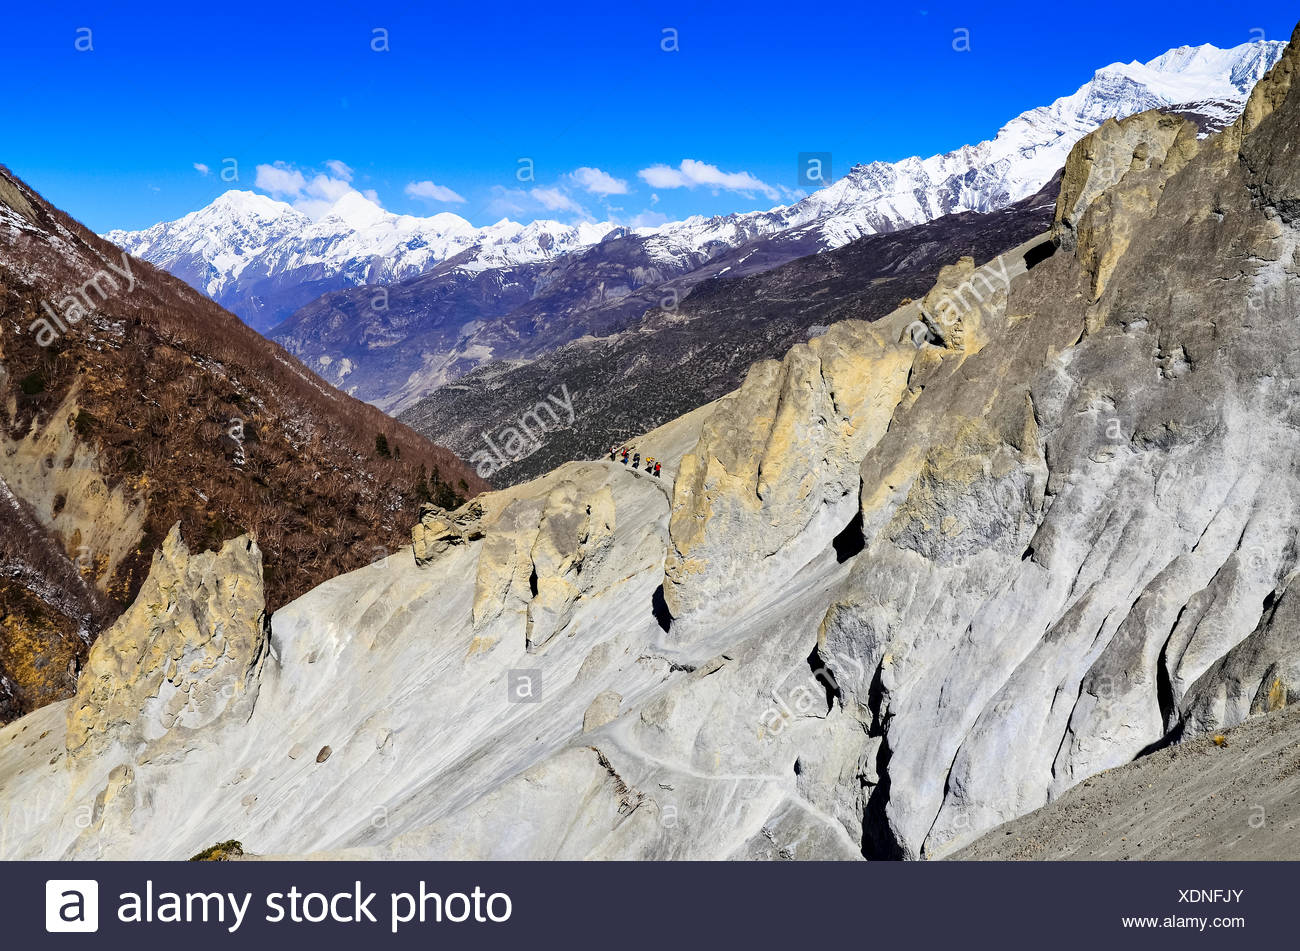 Mountain trekkers walking in the mountains - Stock Image